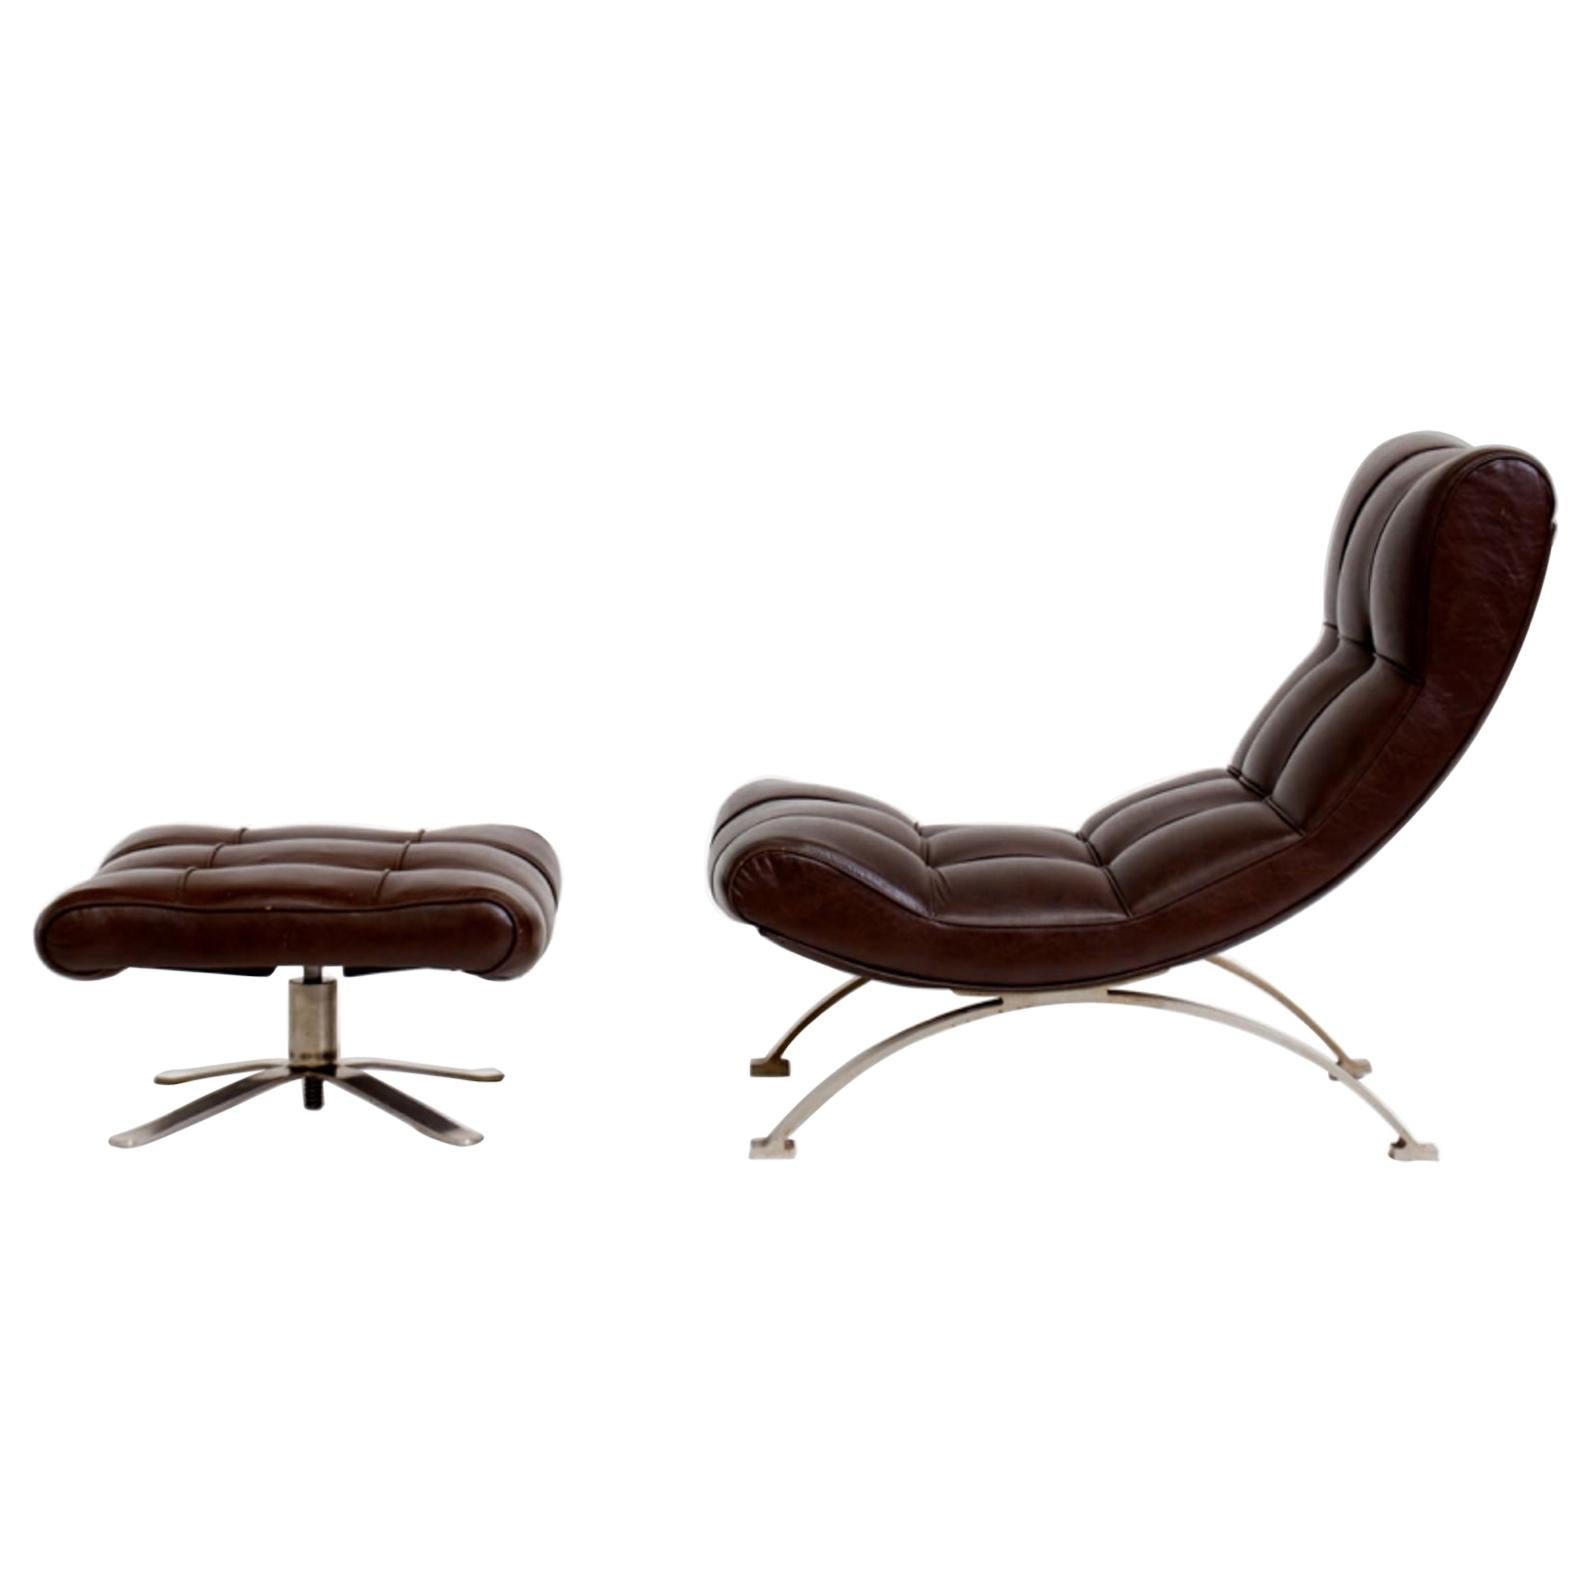 Vintage Leather Armchair with Footrest, Italian Production, 1960s